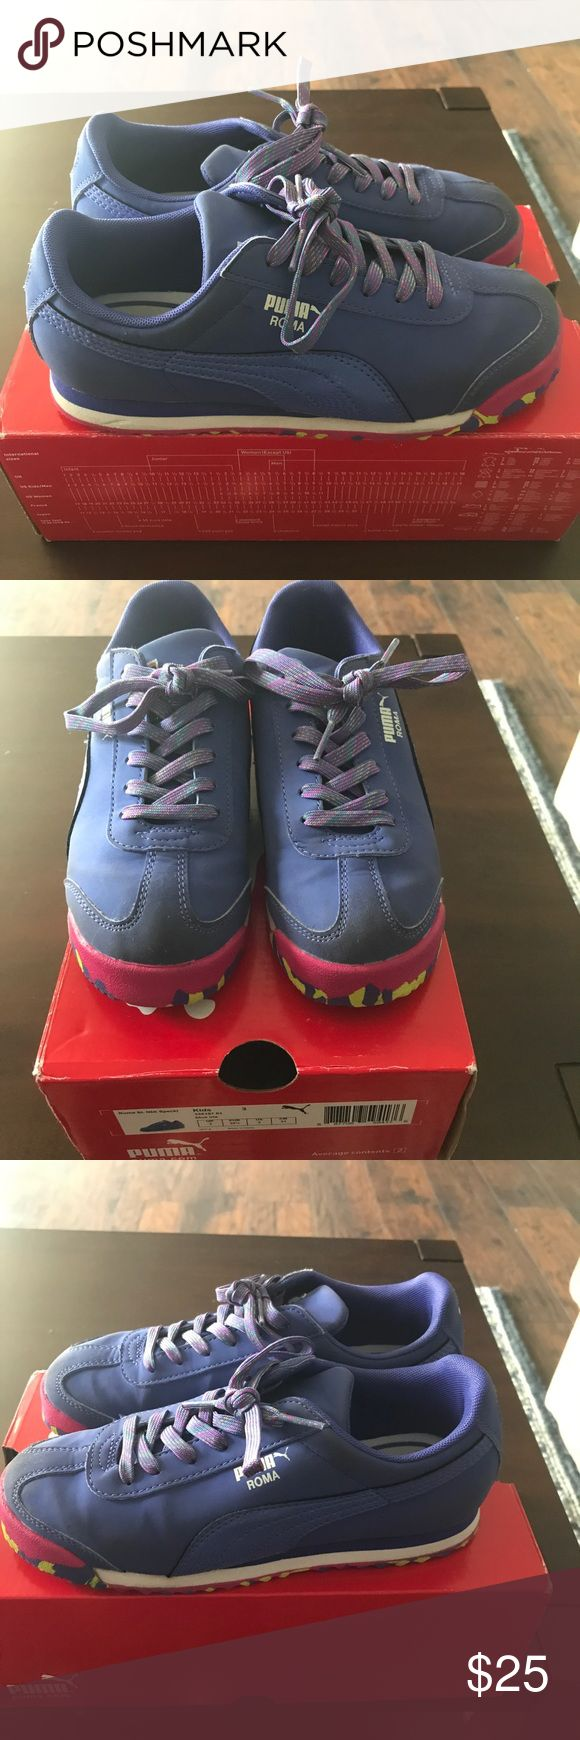 "Preschool puma Roma sneakers""fruity pebble"" I'm selling a used pair of Puma Roma's. They are a preschool size 3. They have been worn a few times but are in good condition as you can see from the pictures. If you have any questions please ask. All reasonable offers accepted. Puma Shoes Sneakers"